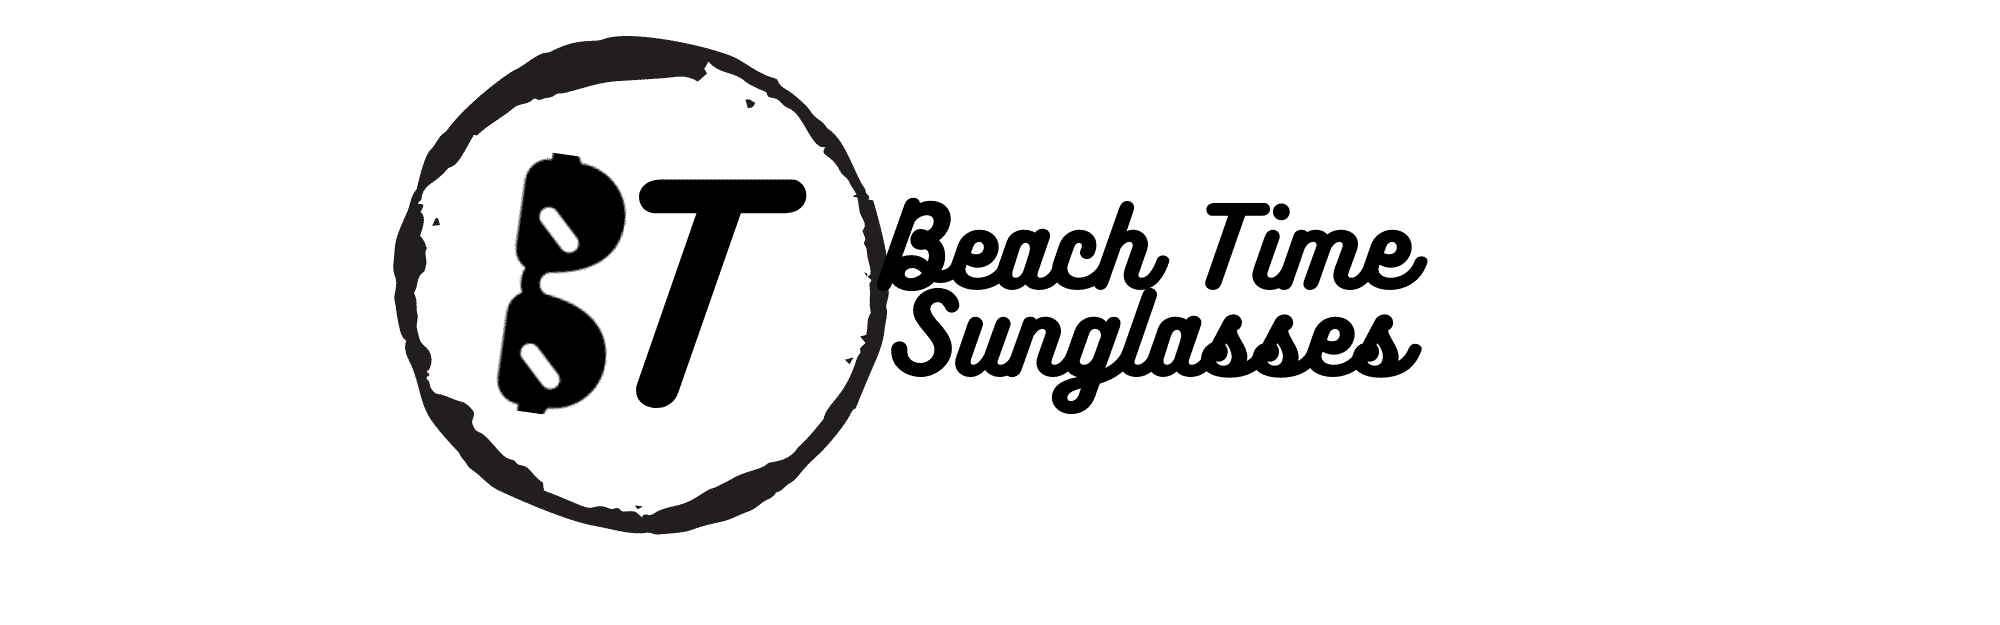 Beach Time Sunglasses